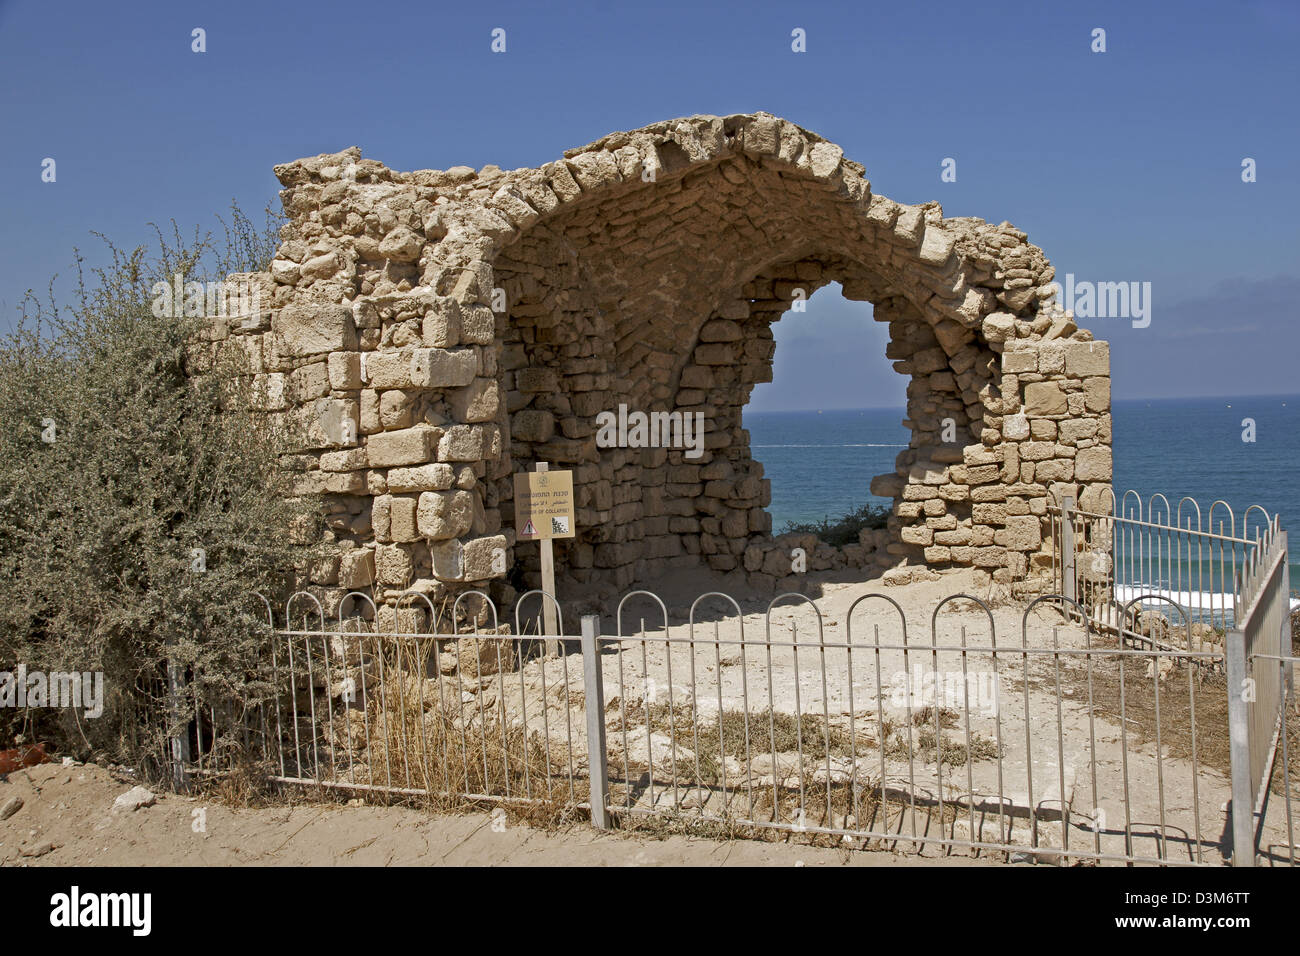 Structure in the old Ashkelon port, Israel - Stock Image